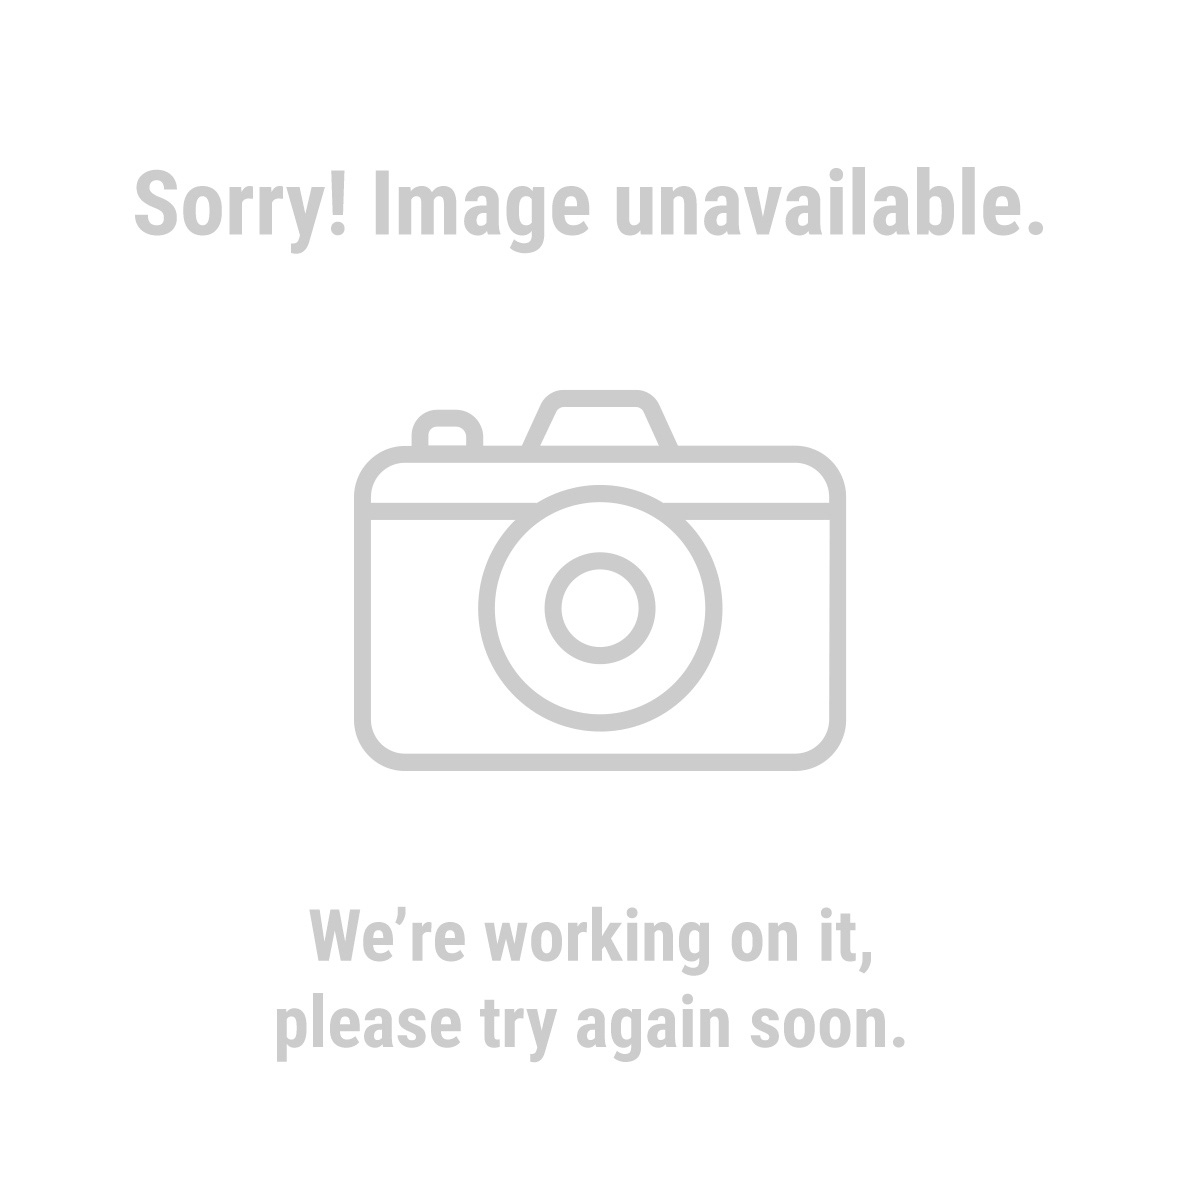 2 Hp Electric Motor Single Phase Wiring Diagram Motors A Doerr 1 2hp For 120v T3 T4 Ohm Meter 3 Expert